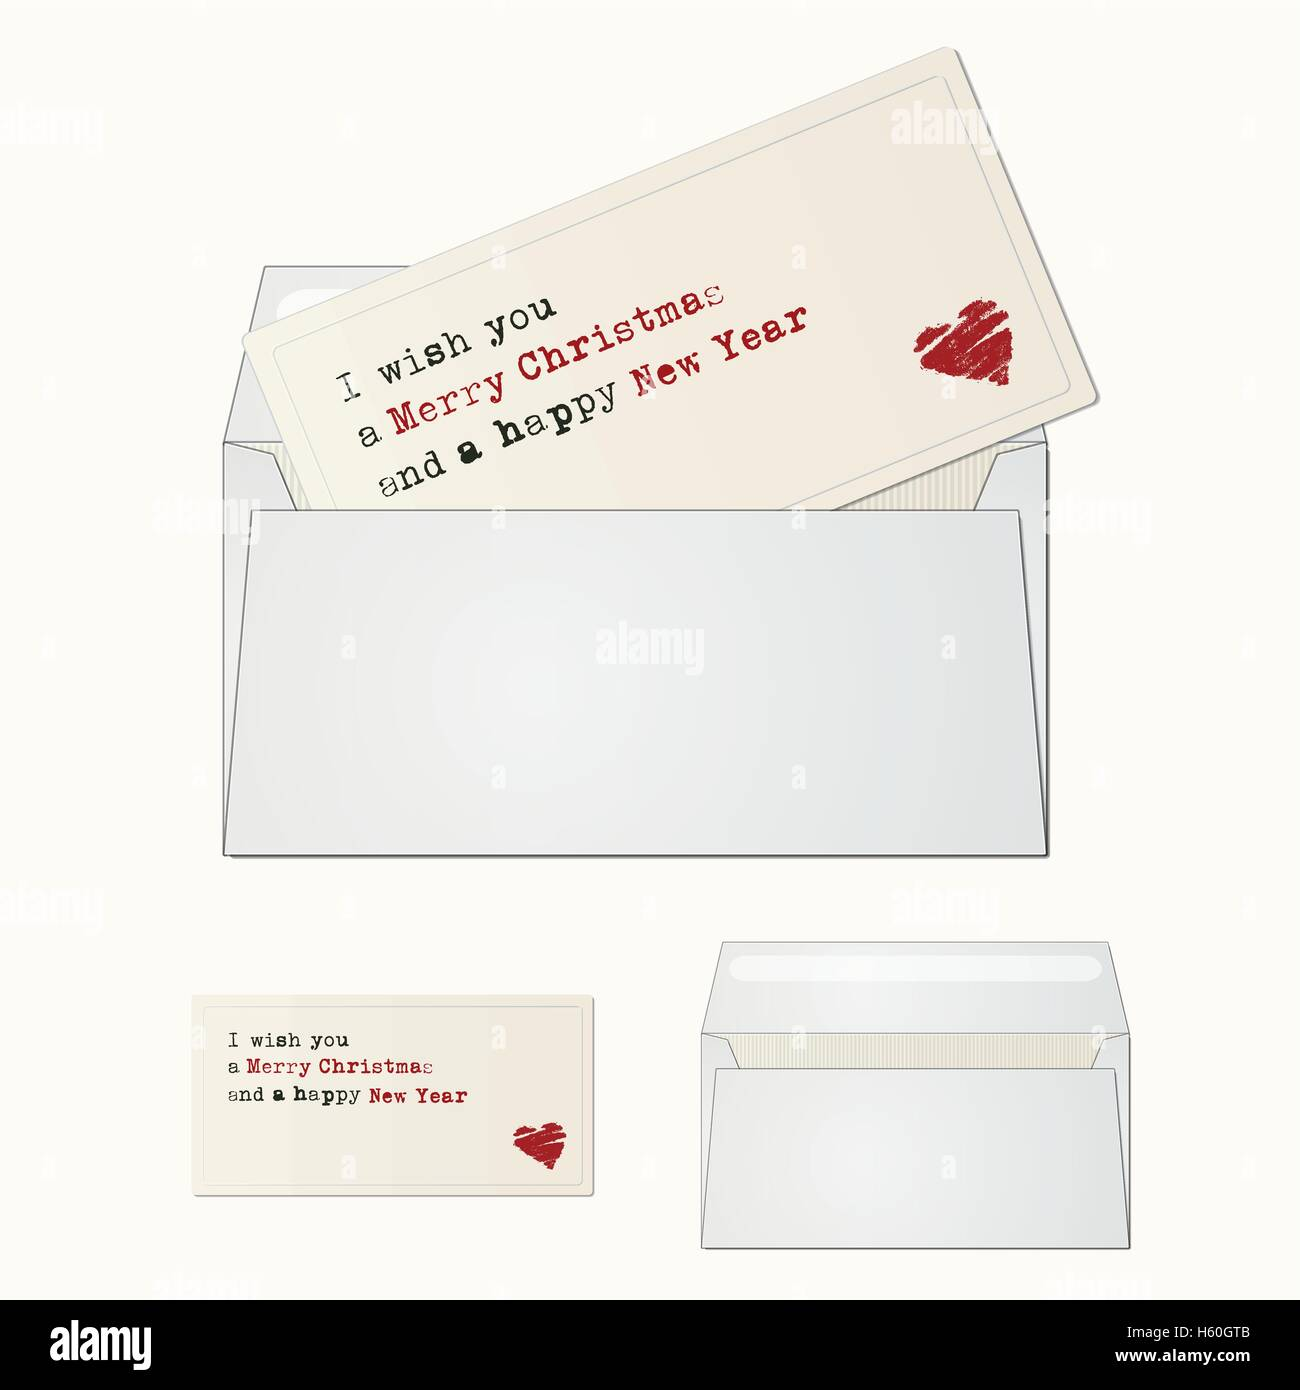 Elegant and minimal greeting card with envelope for winter season greeting. Christmas card. - Stock Image